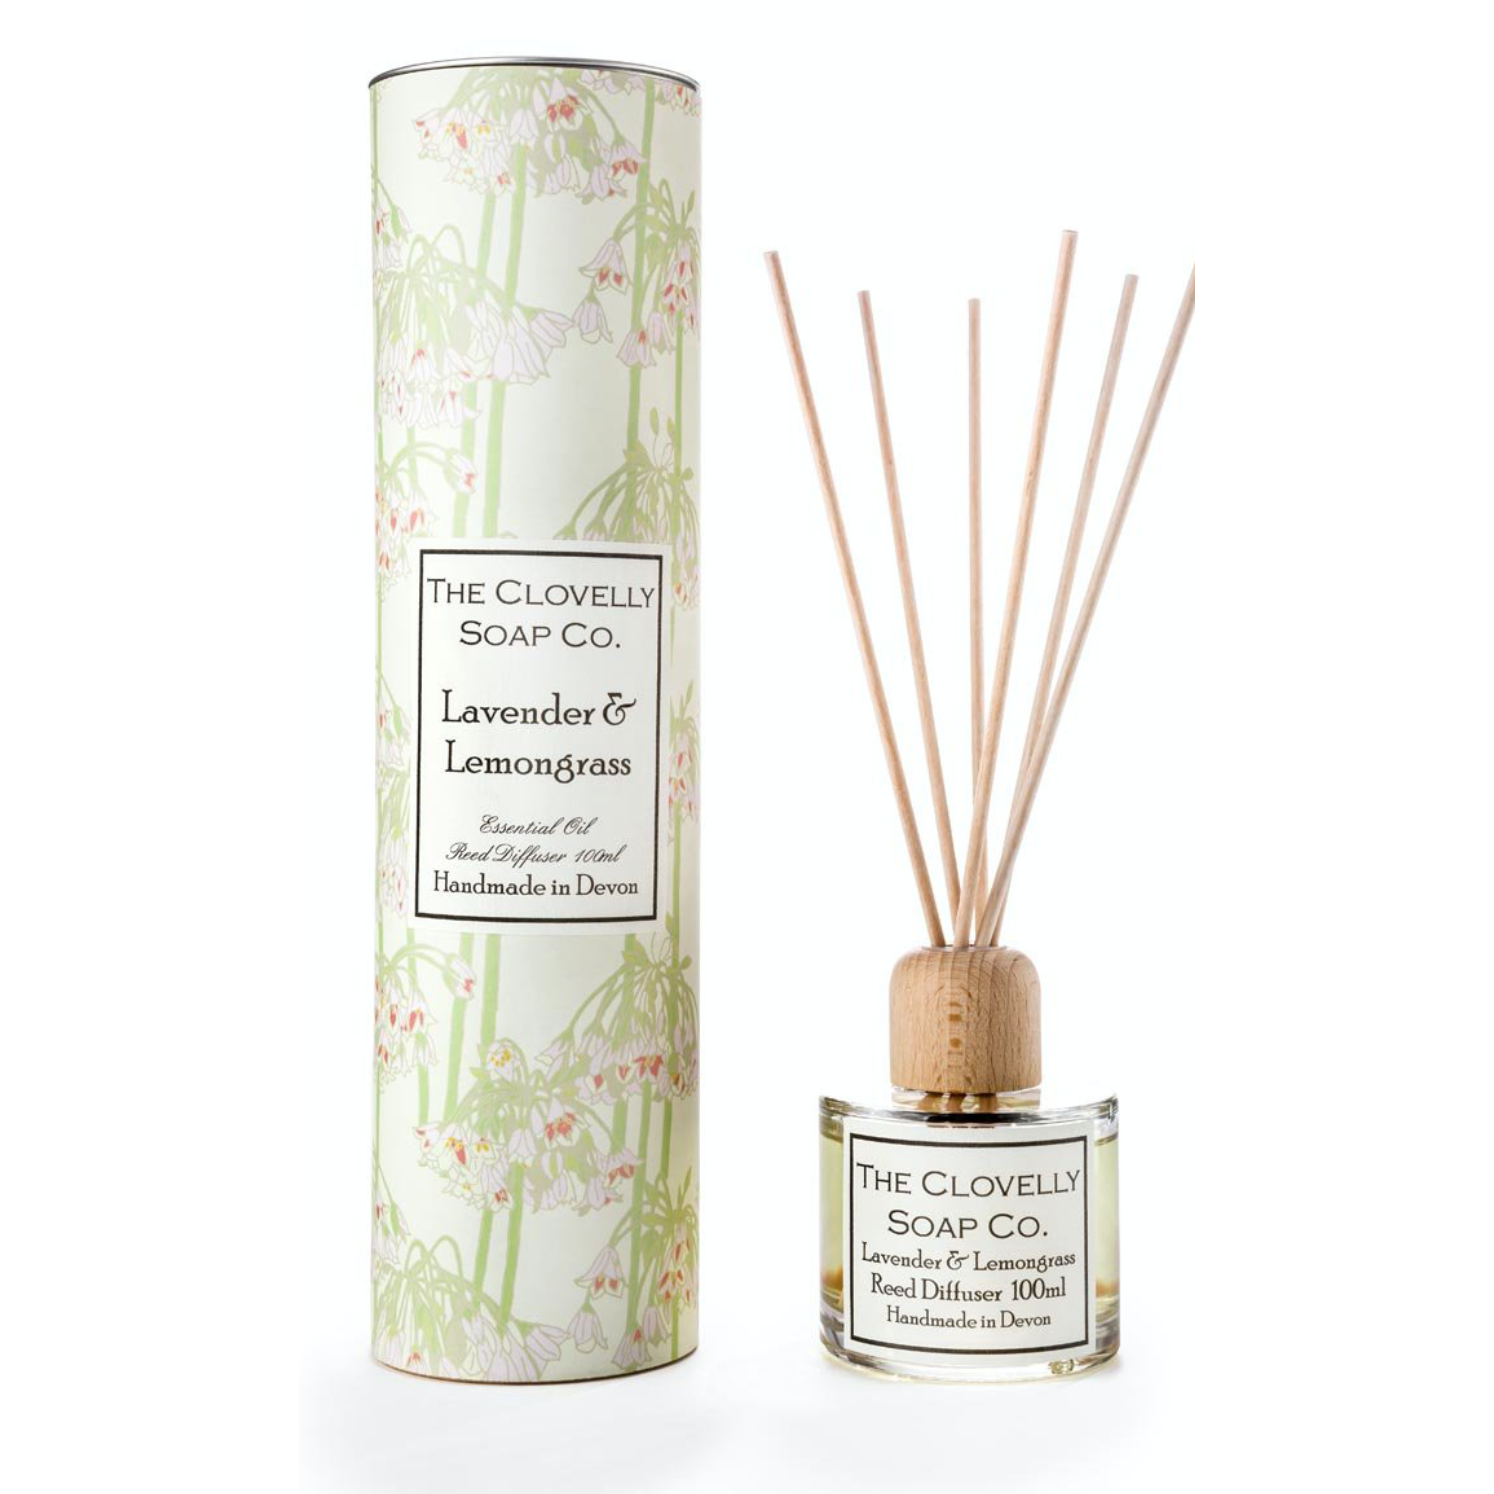 Lavender & Lemongrass Reed Diffuser, made using eco friendly Augeo diffuser liquid and Pure Therapeutic Grade Essential Oils - natoorio